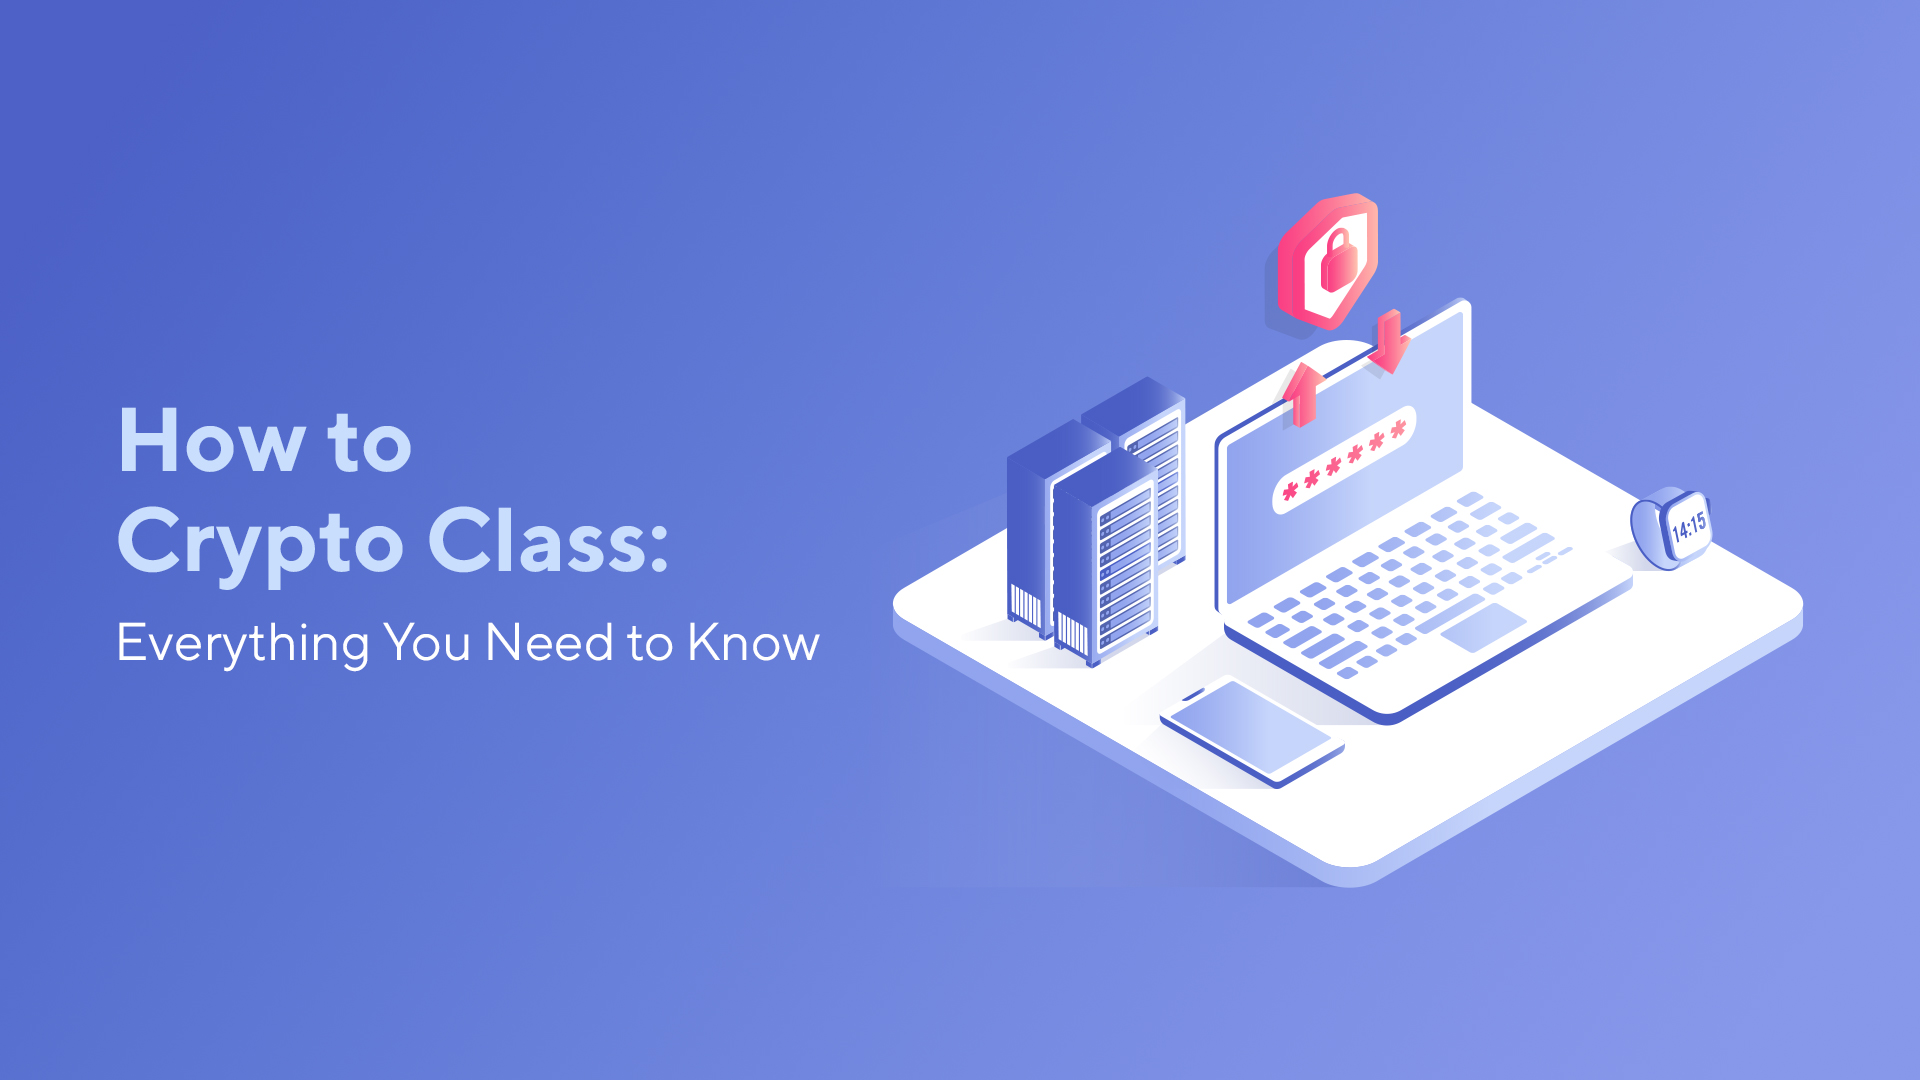 How to Crypto Class: Everything You Need to Know